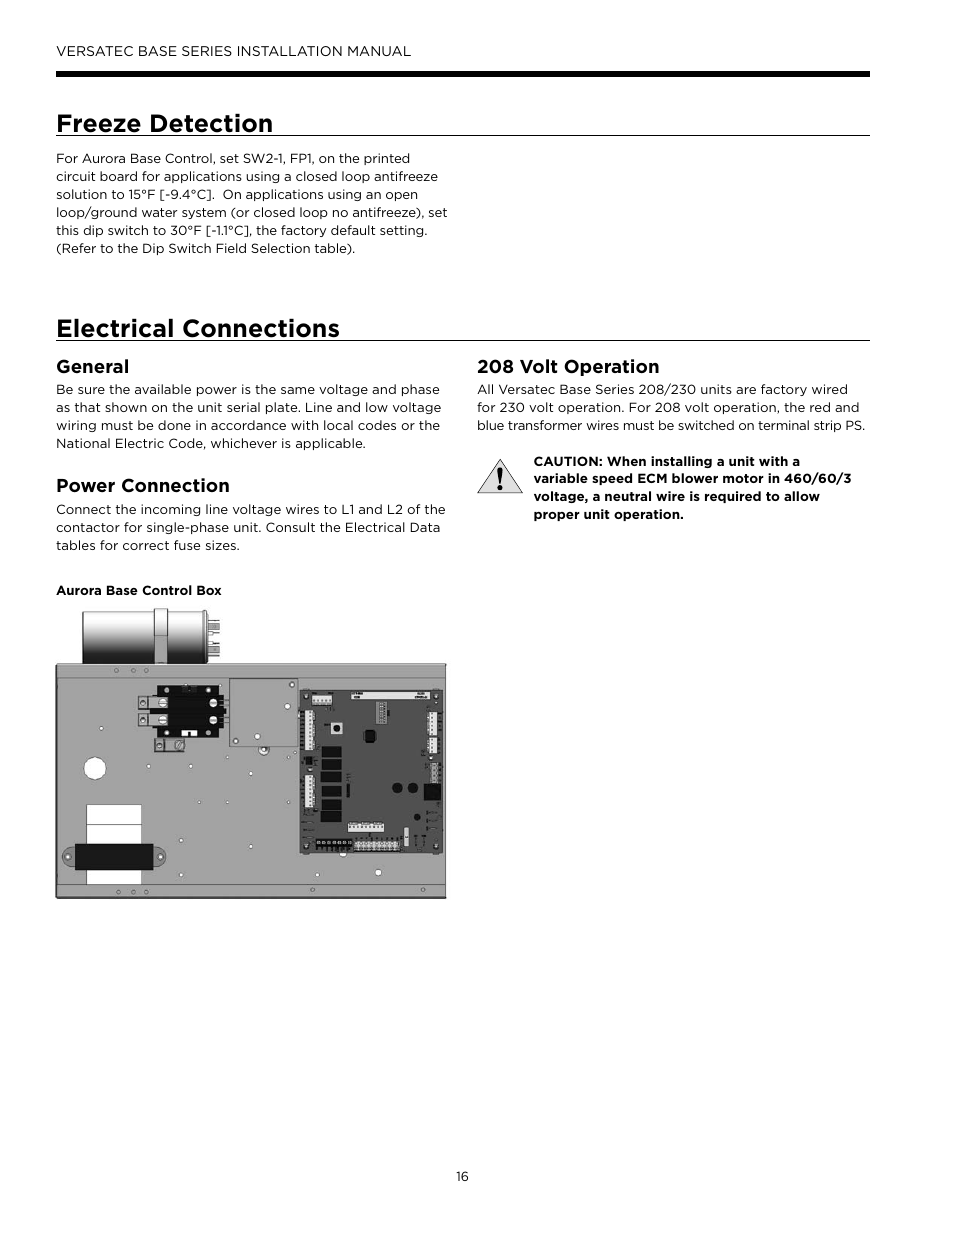 medium resolution of freeze detection electrical connections general waterfurnace versatec base user manual page 16 56